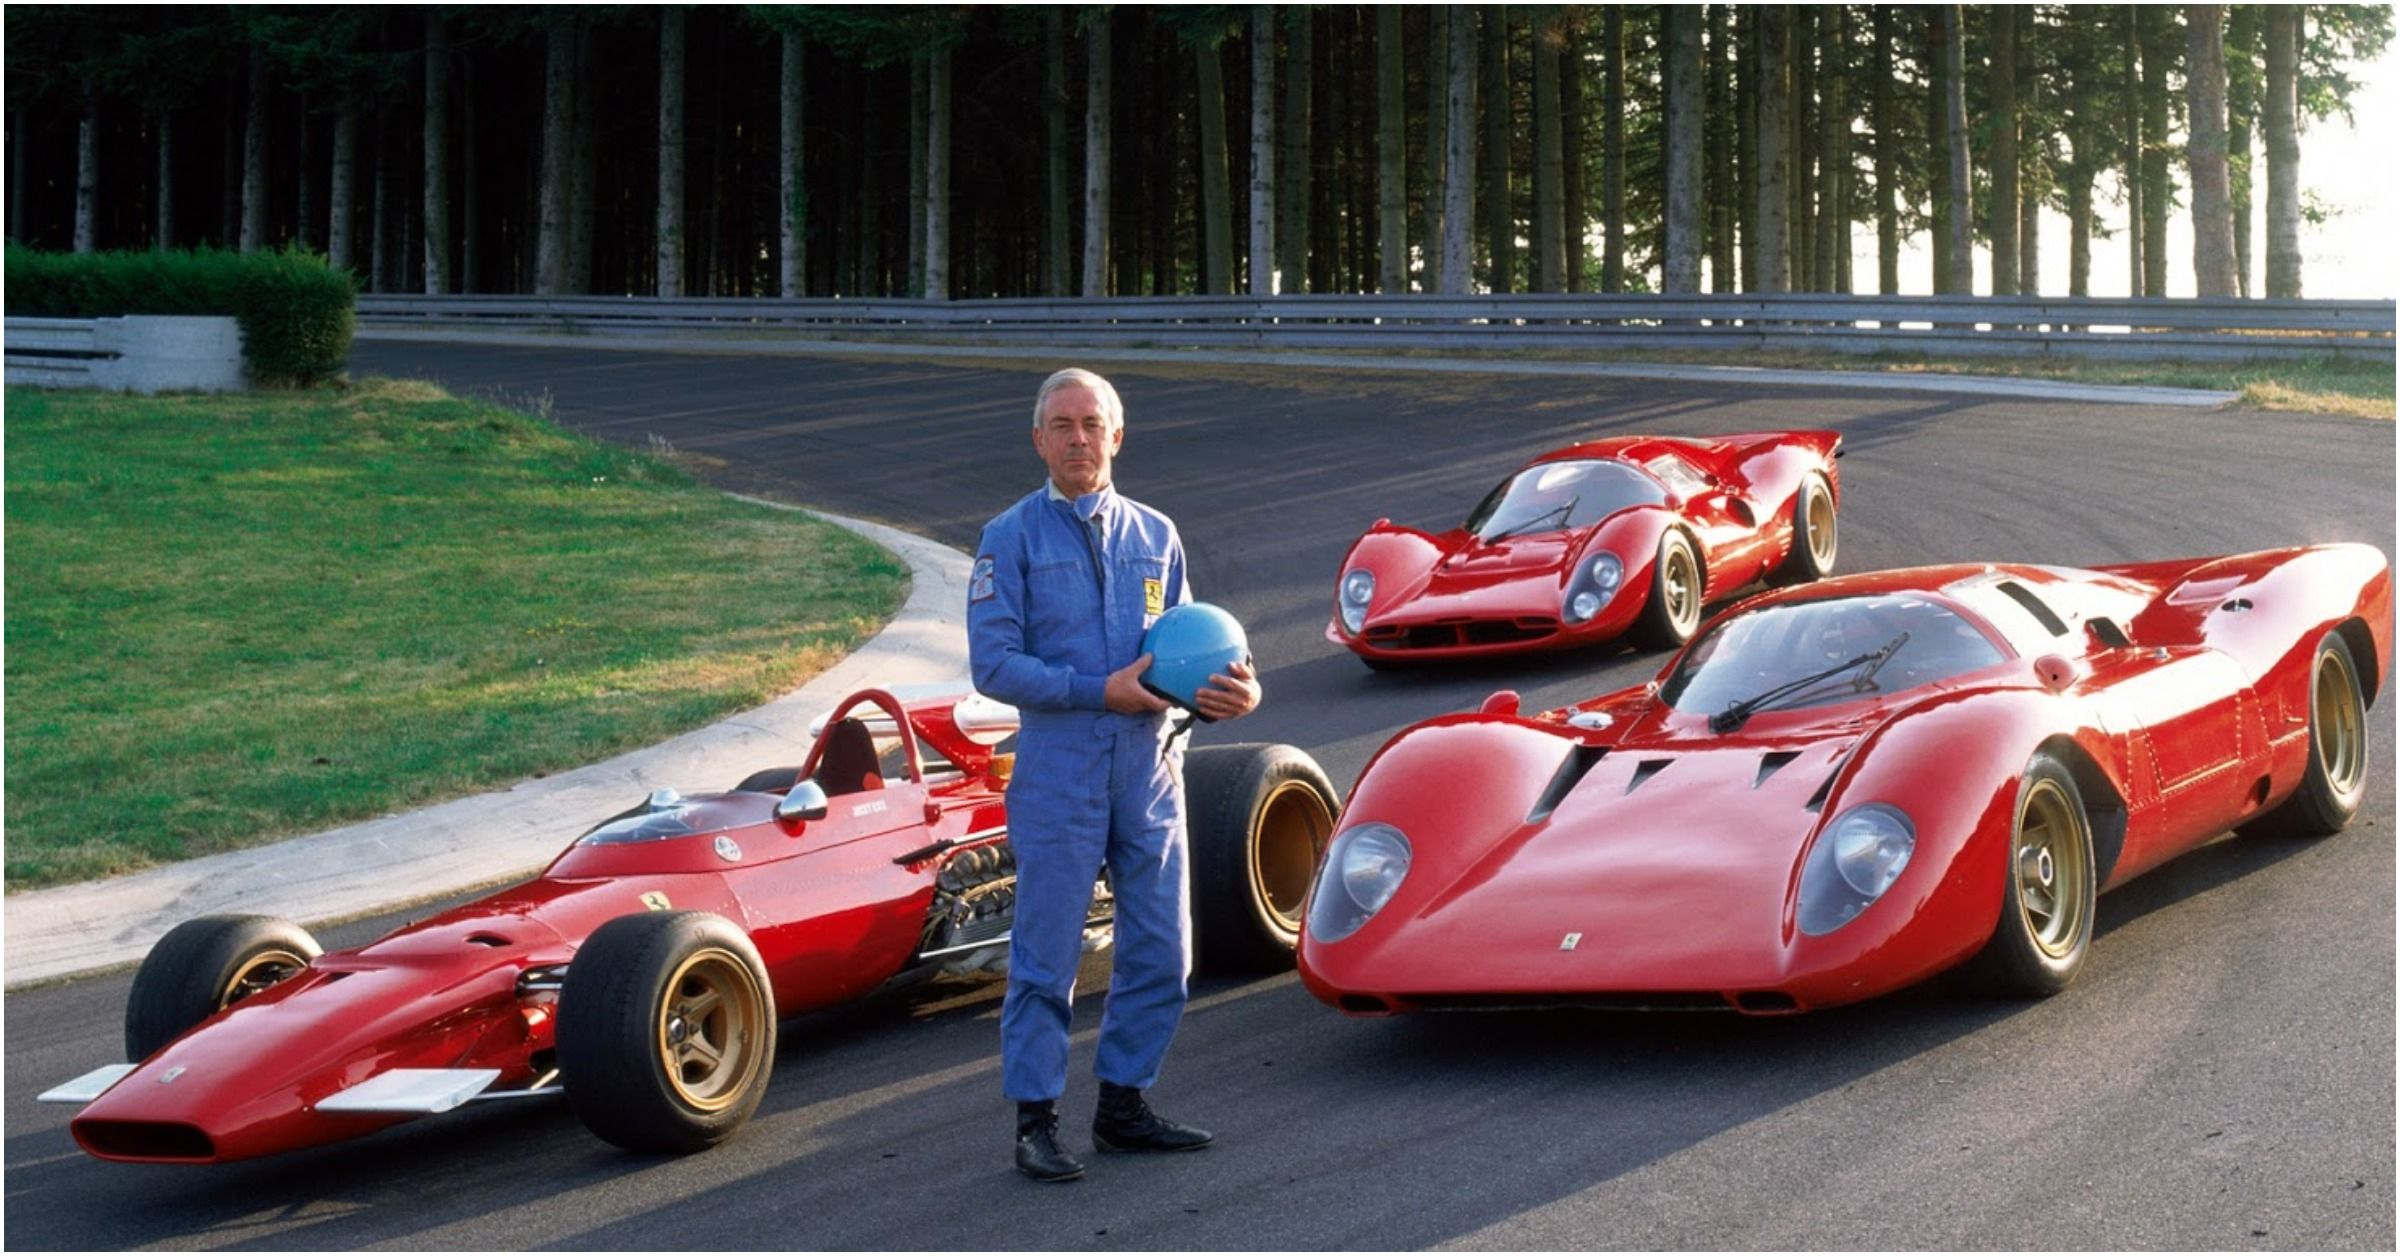 15 Facts About Pierre Bardinon And His Crazy Ferrari Collection